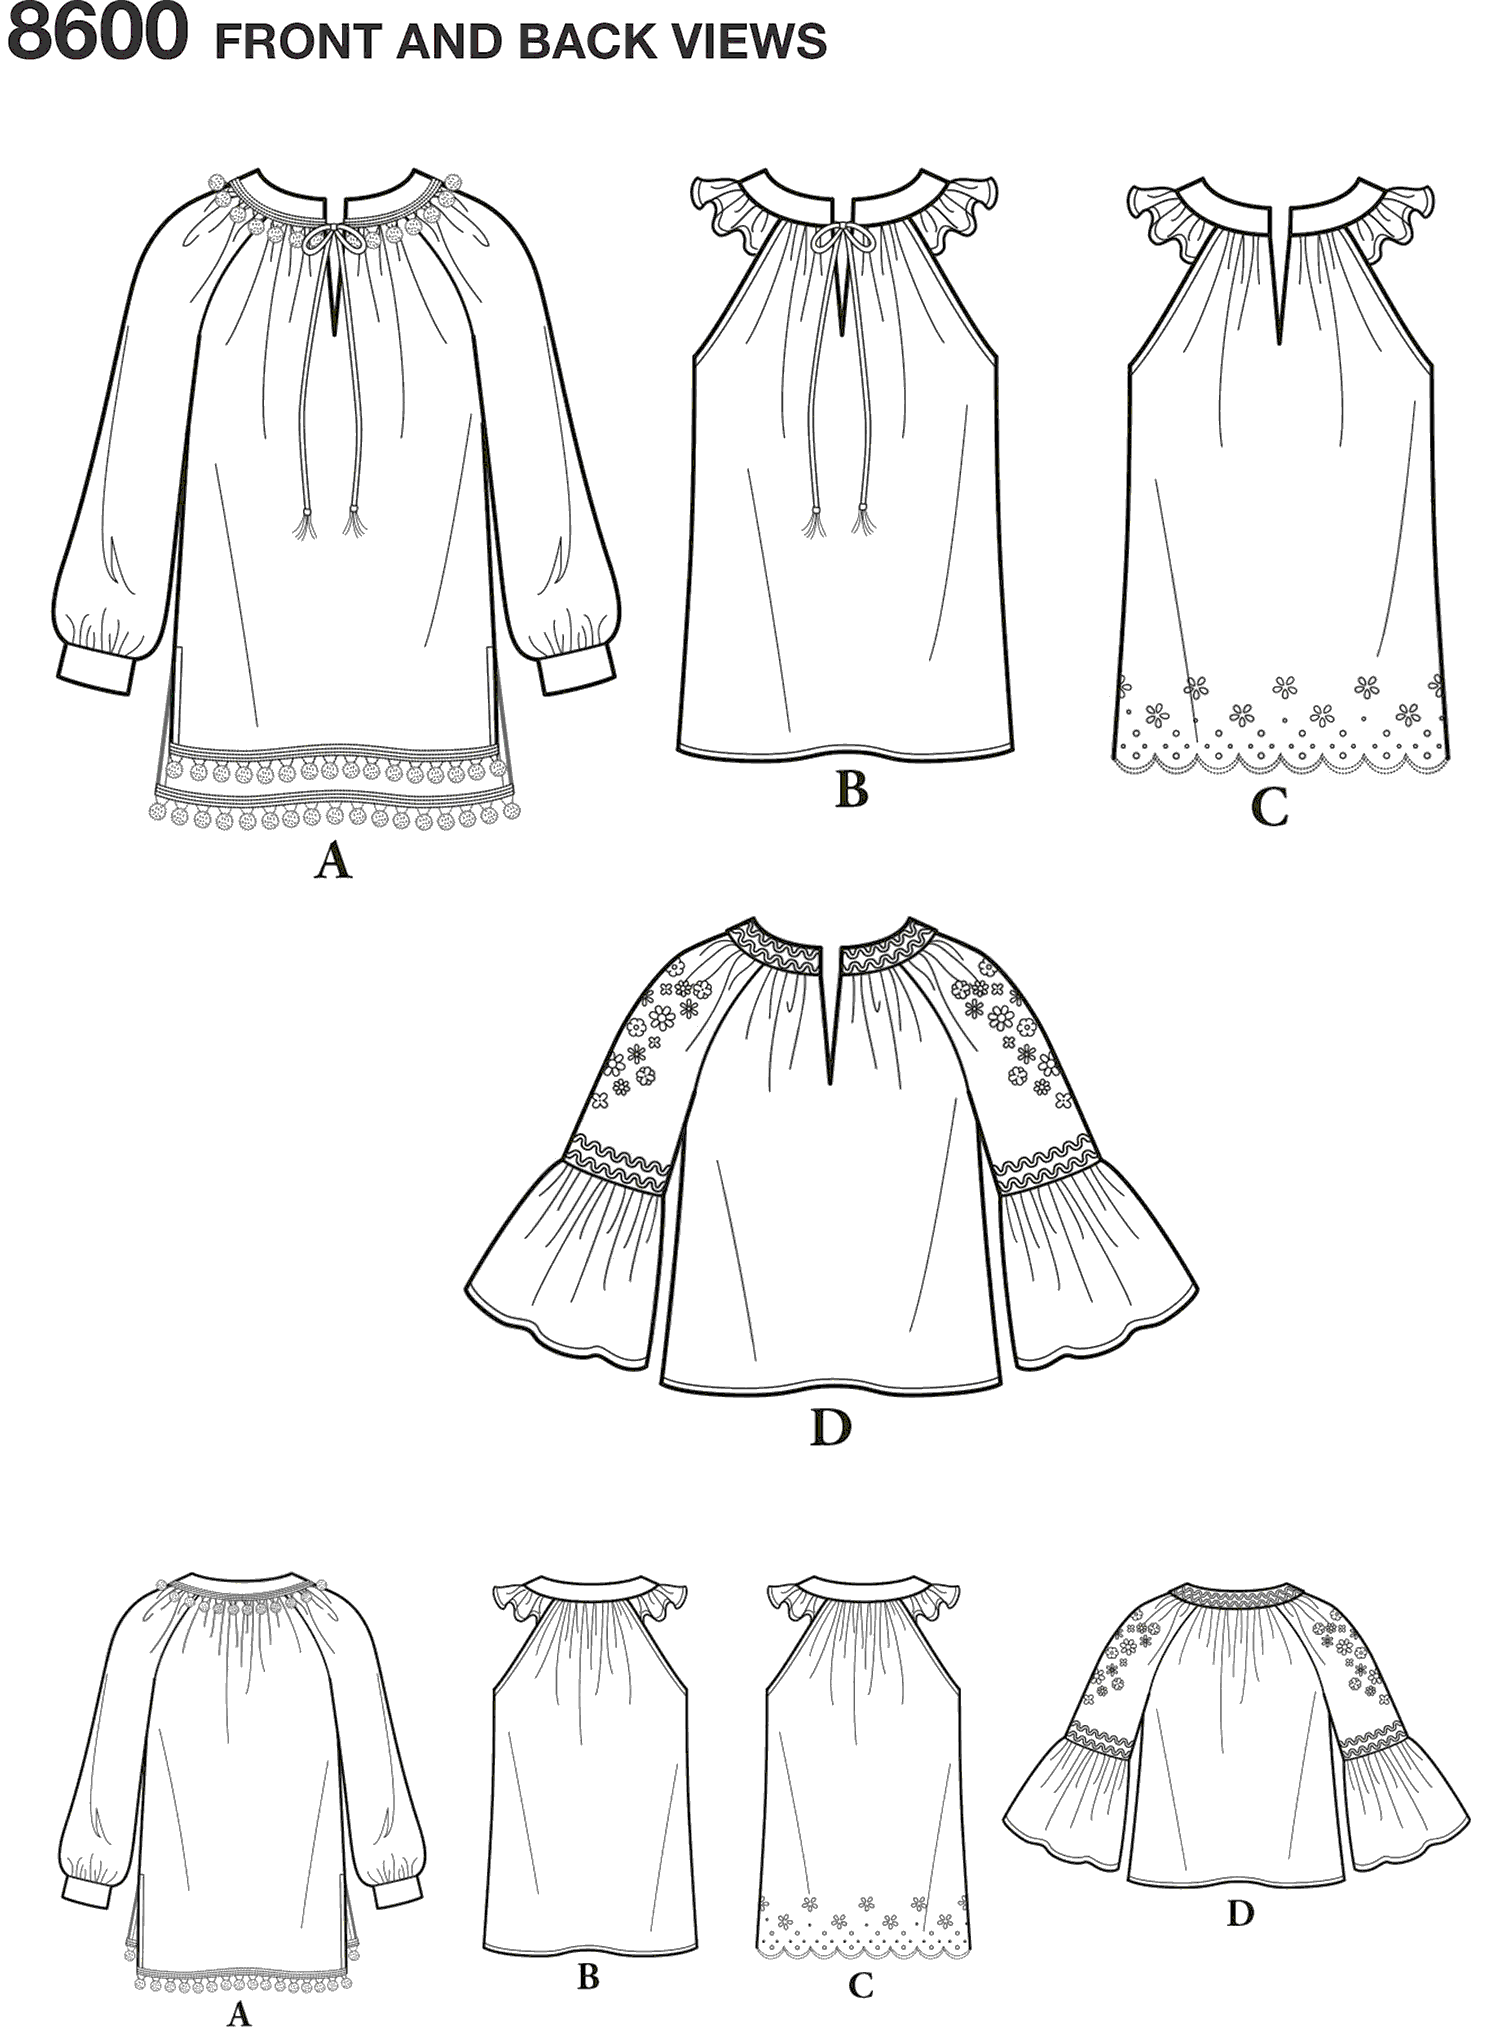 Simplicity Pattern 8600 Womens Pullover Top Line Art From Patternsandplains.com